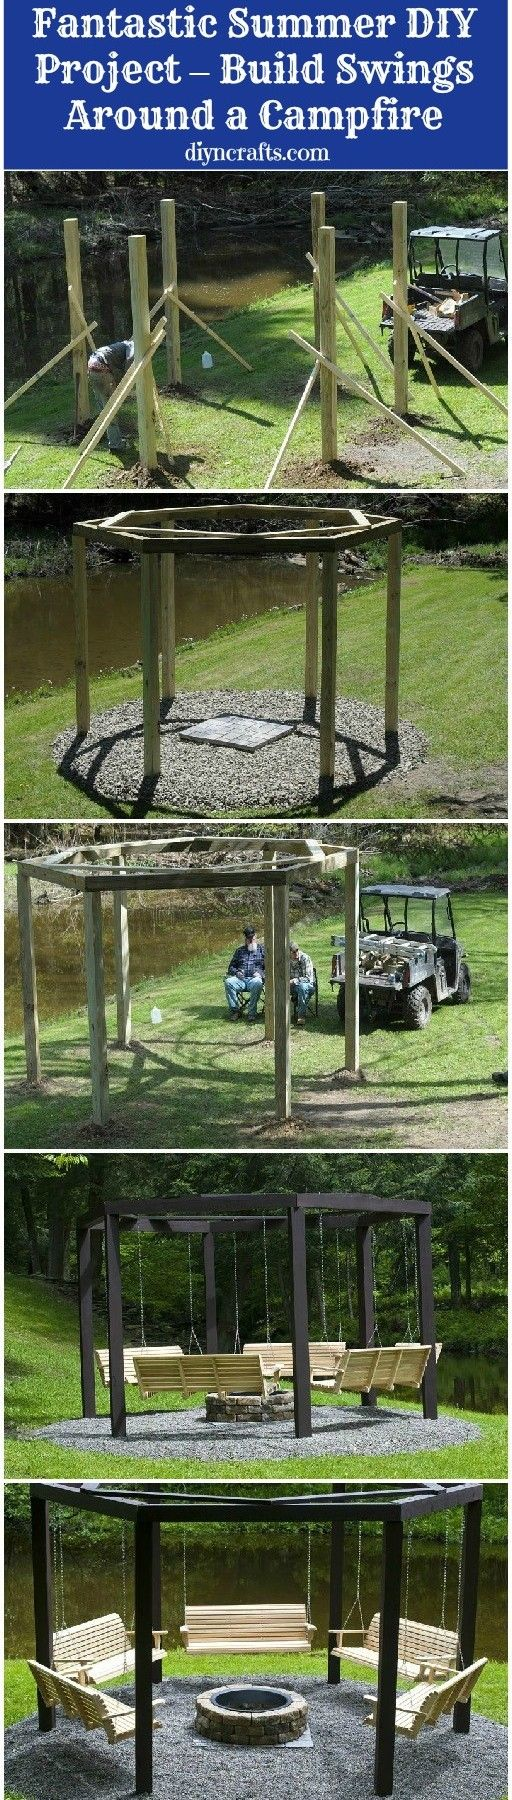 Fantastic Summer DIY Project – Build Swings Around a Campfire...awesome